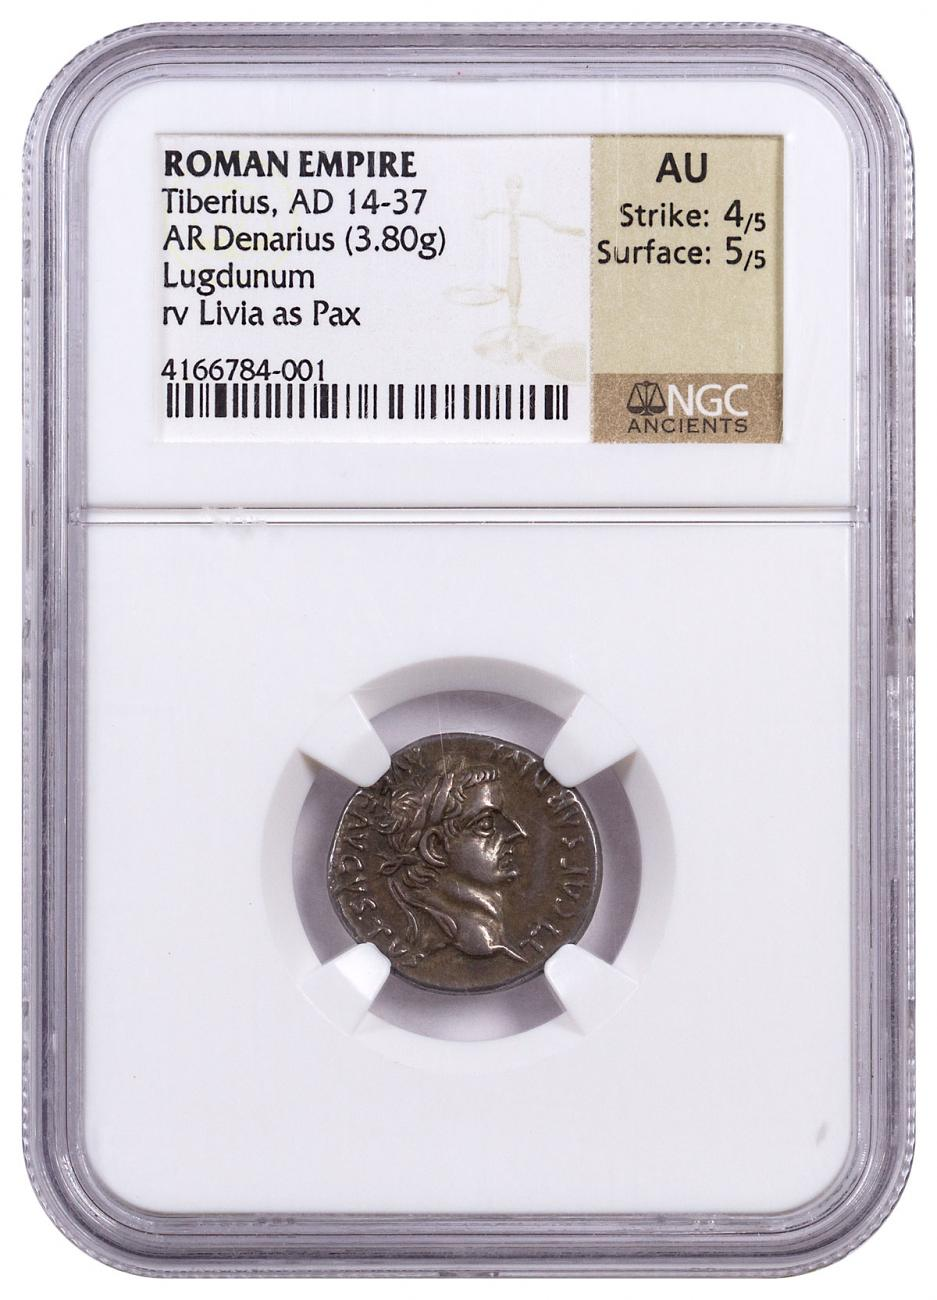 "Roman Empire, Silver Denarius of Tiberius (AD 14-37) - Biblical ""Tribute Penny"" - obv. Bust/rv. Livia as Pax NGC AU (Strike: 4/5, Surface: 5/5) [12505]"